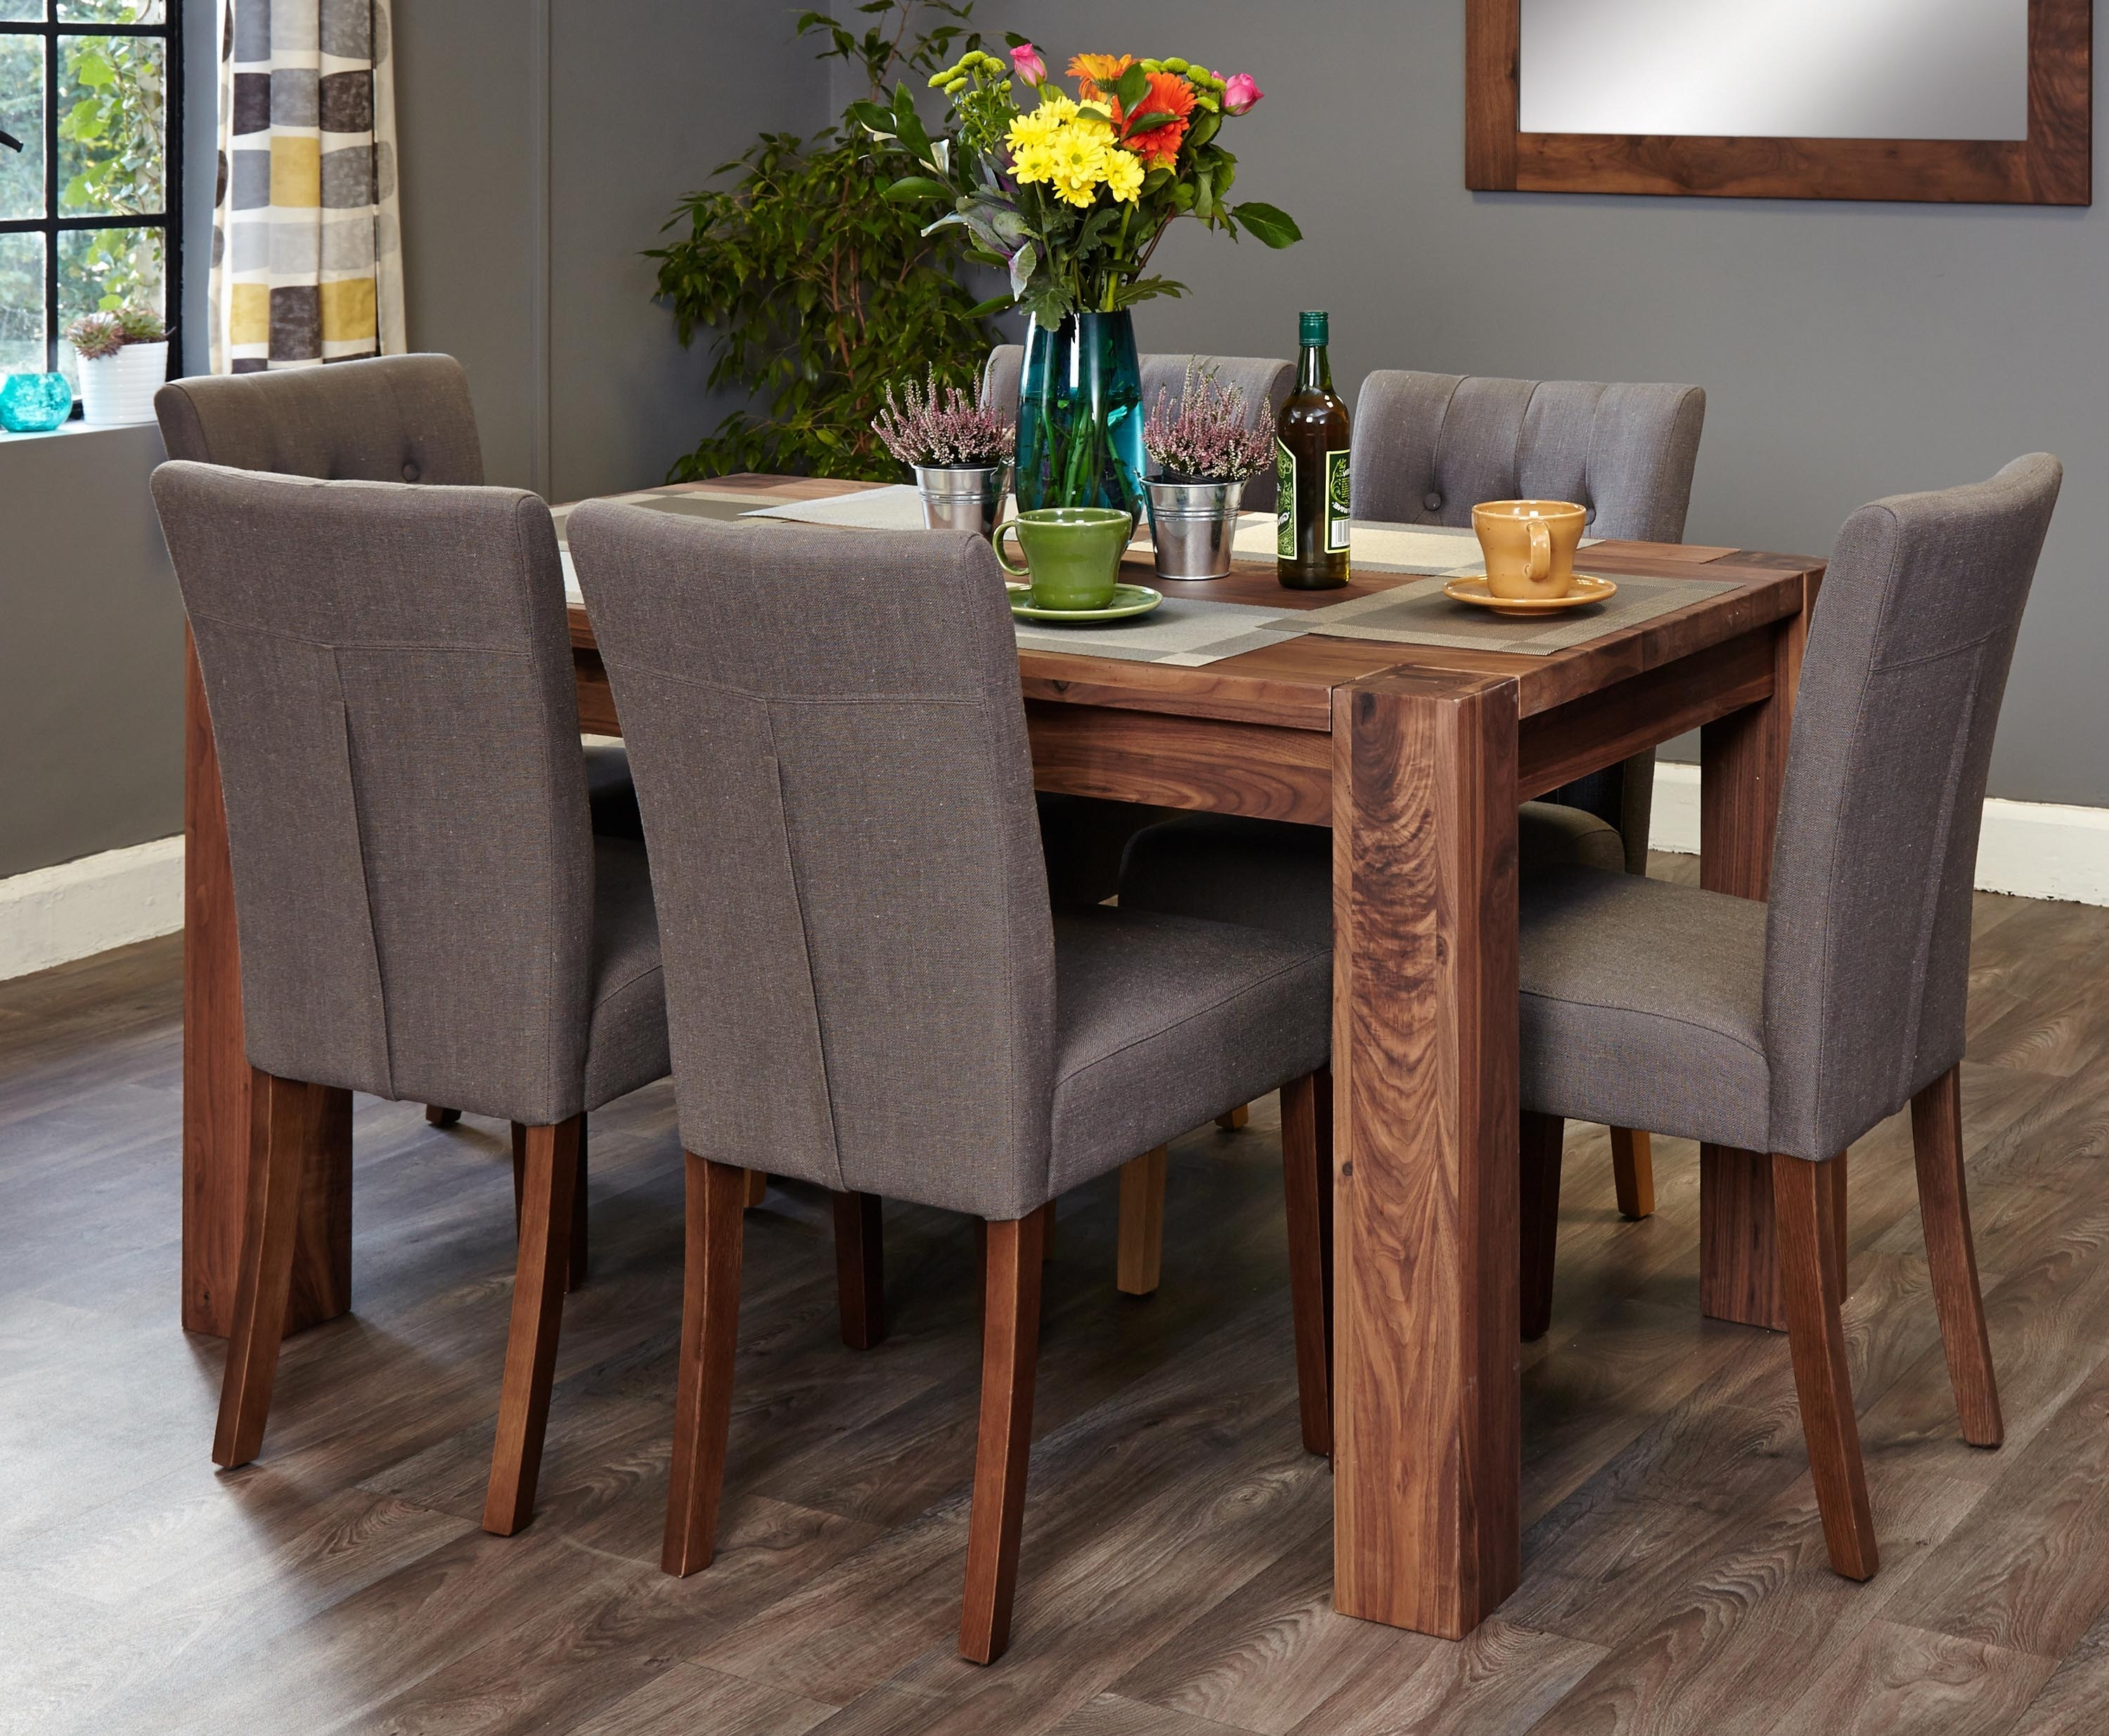 Shiro Walnut 6 Seater Dining Table Set (Slate Flare Back) (Socdr04B Within Recent 6 Seat Dining Tables And Chairs (View 14 of 25)